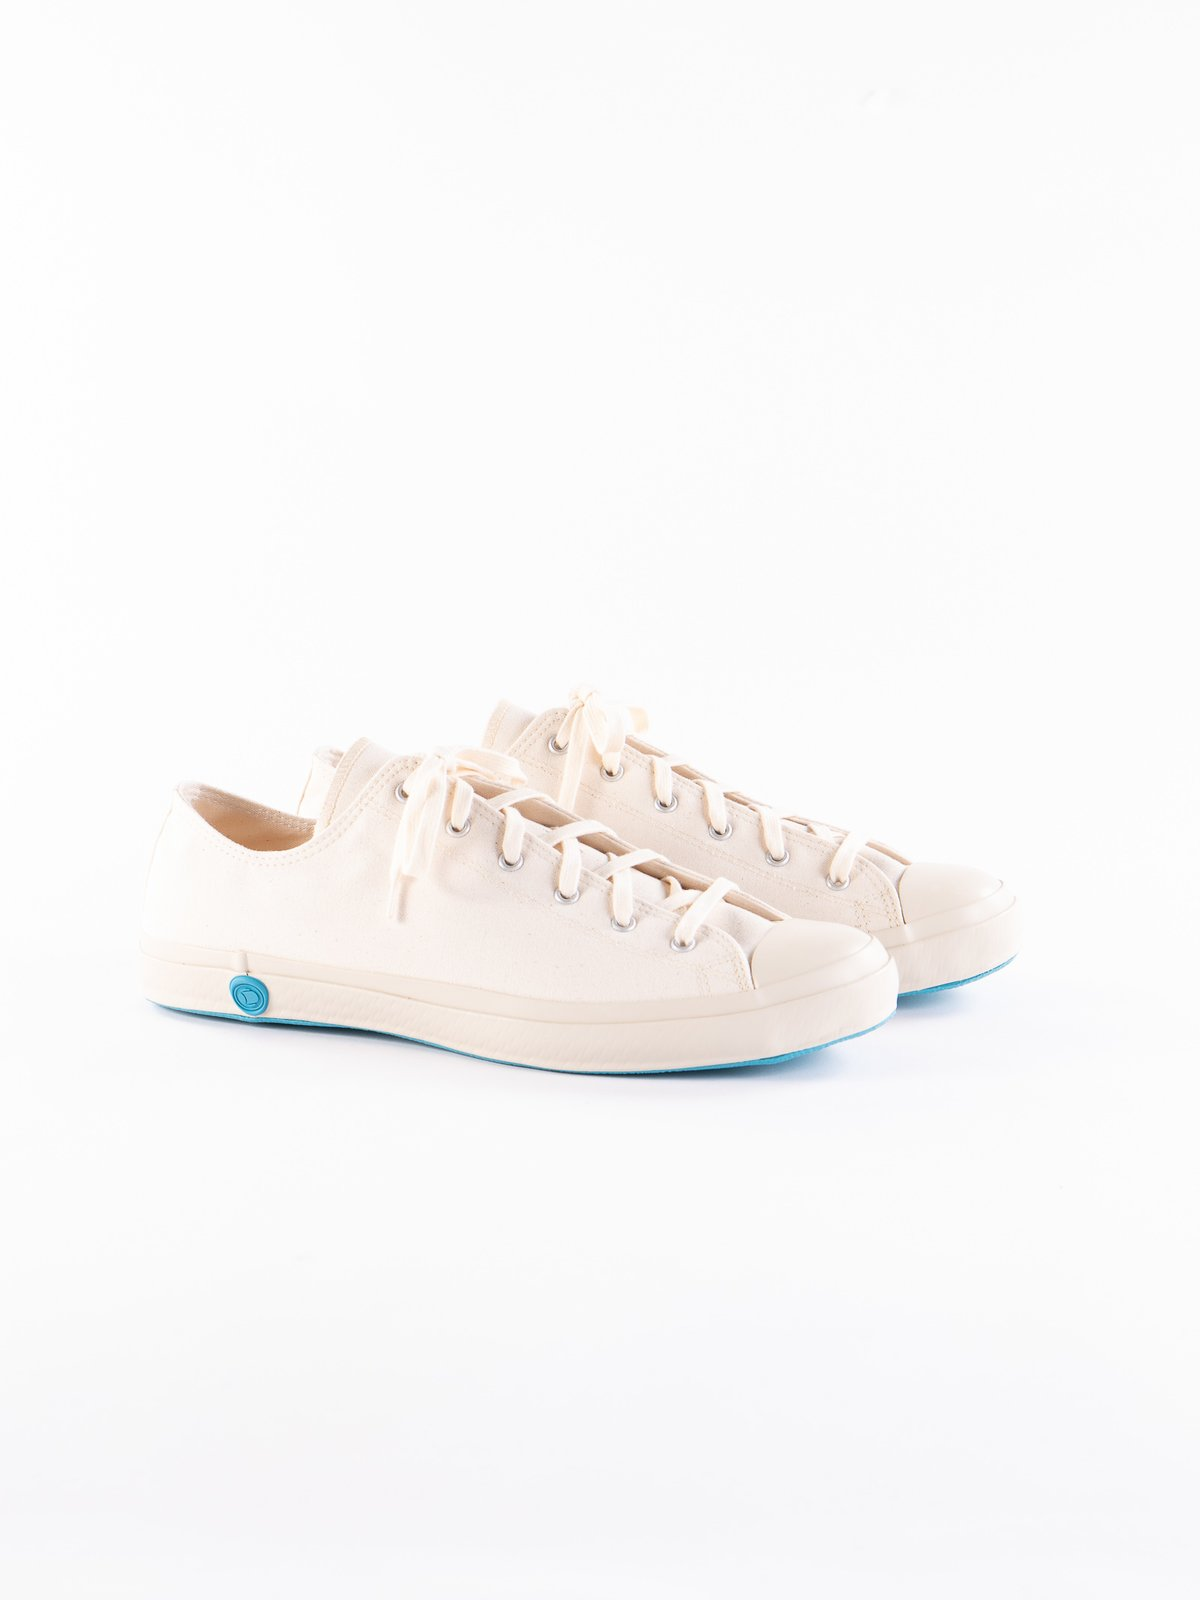 White 01JP Low Trainer - Image 1